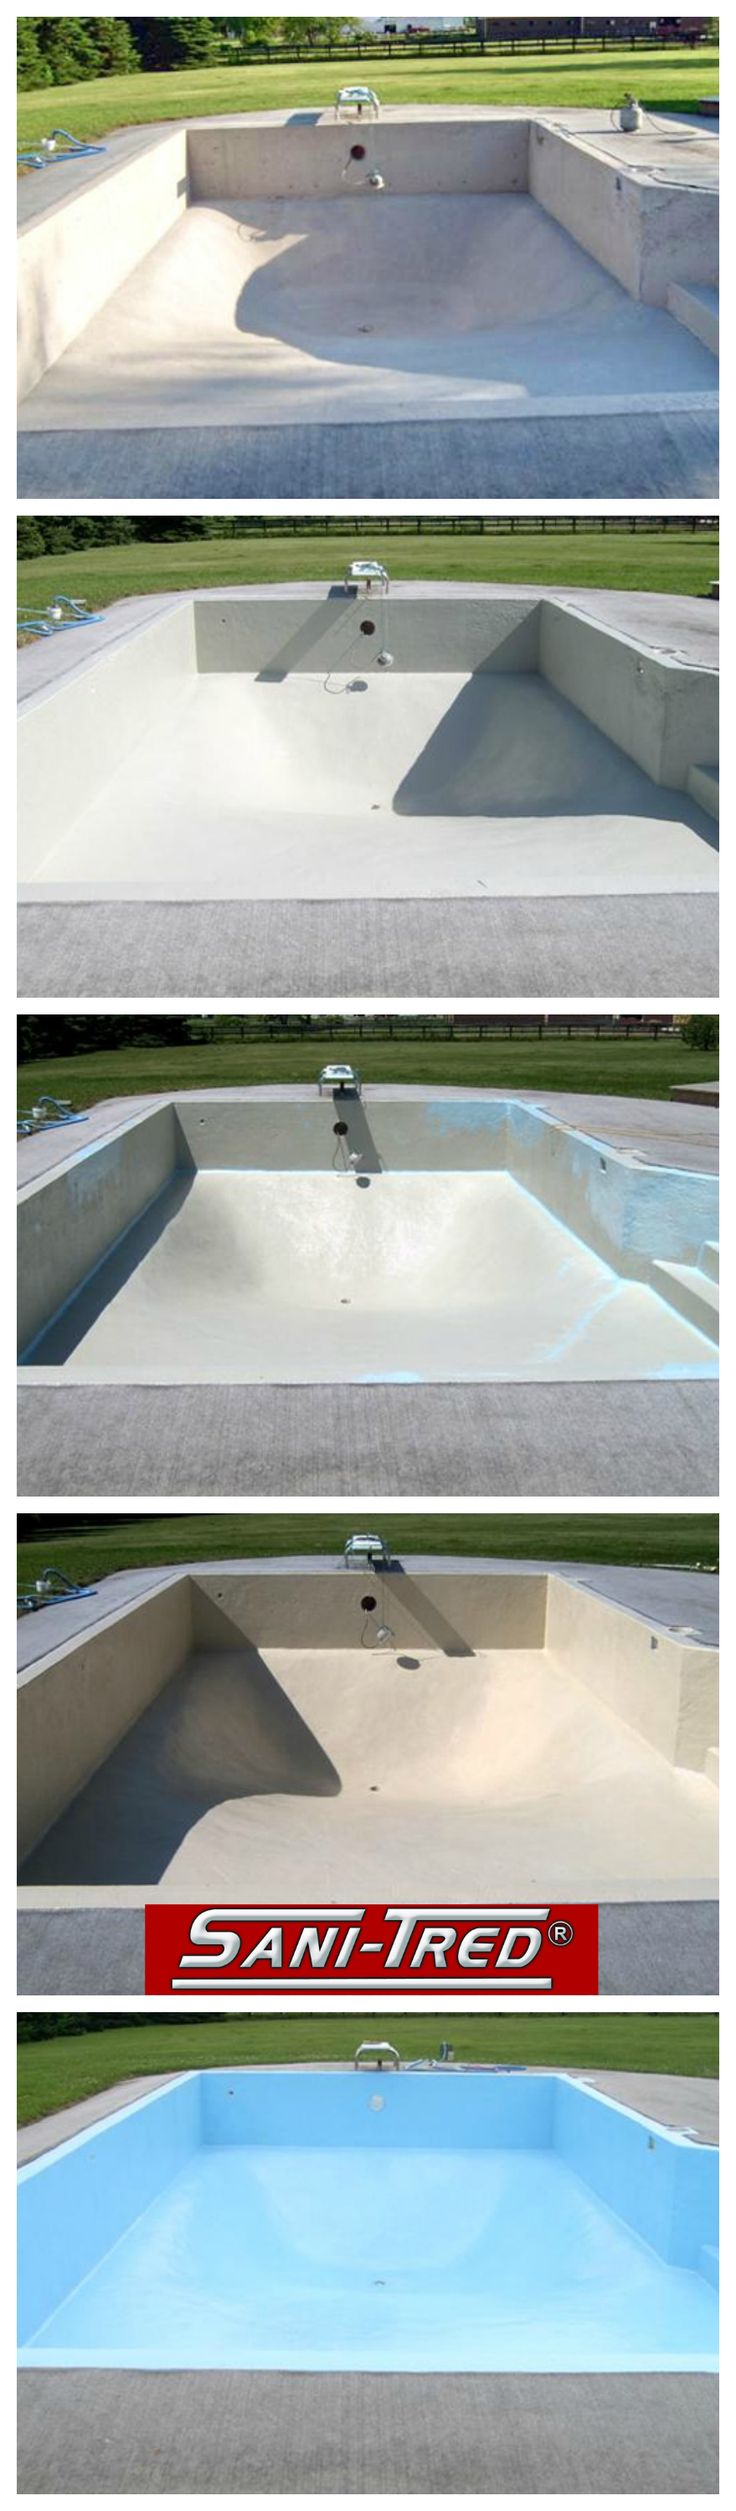 25 best ideas about pool plaster on pinterest - Bobs swimming pool service and repair ...